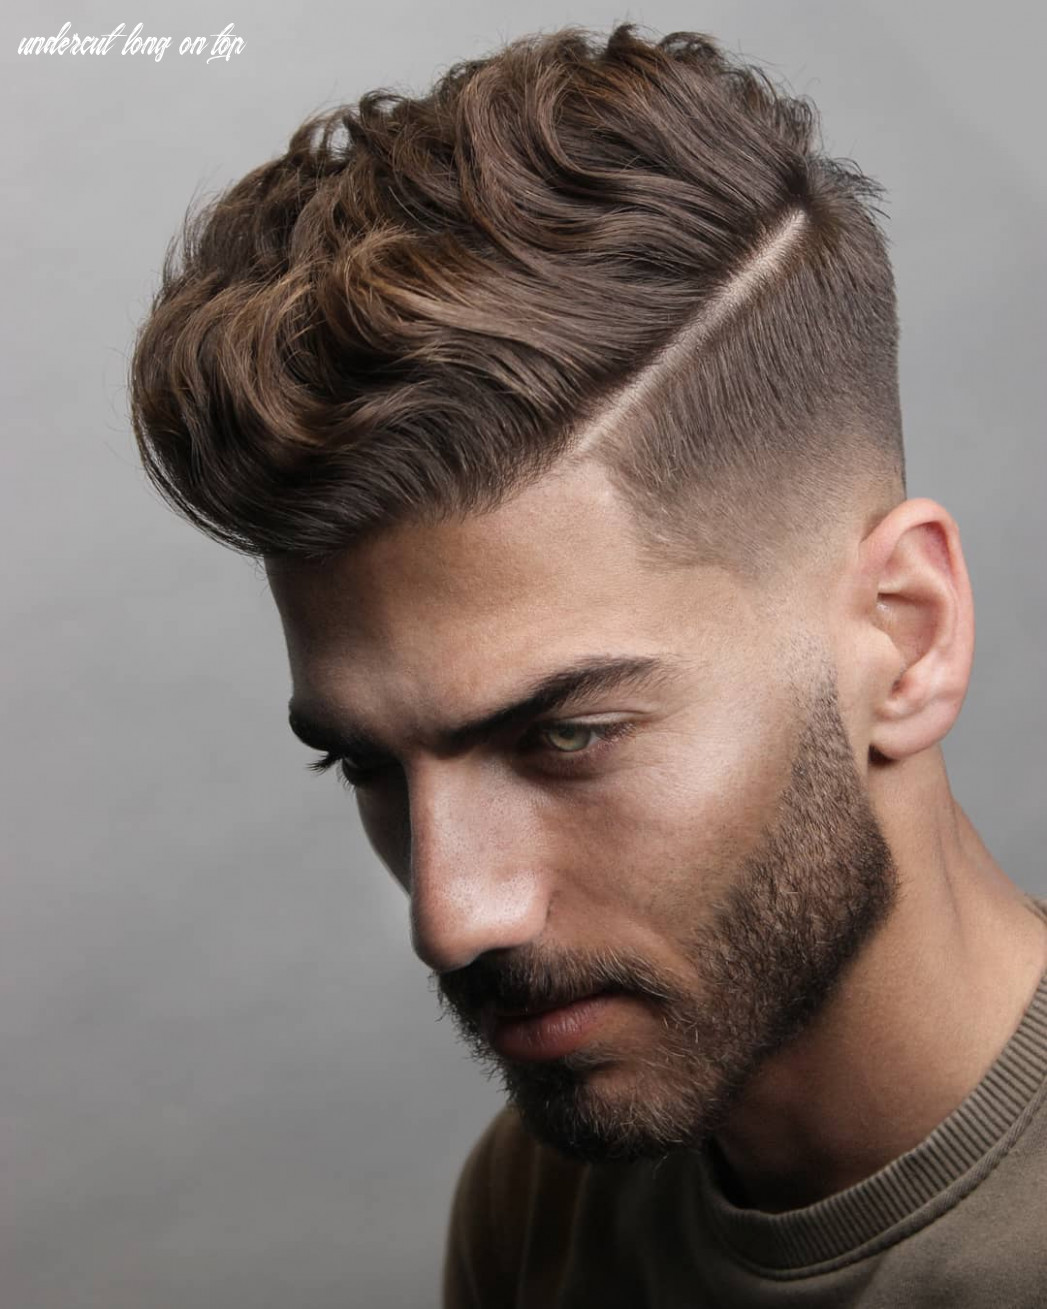 8 short on sides long on top haircuts for men | man haircuts undercut long on top